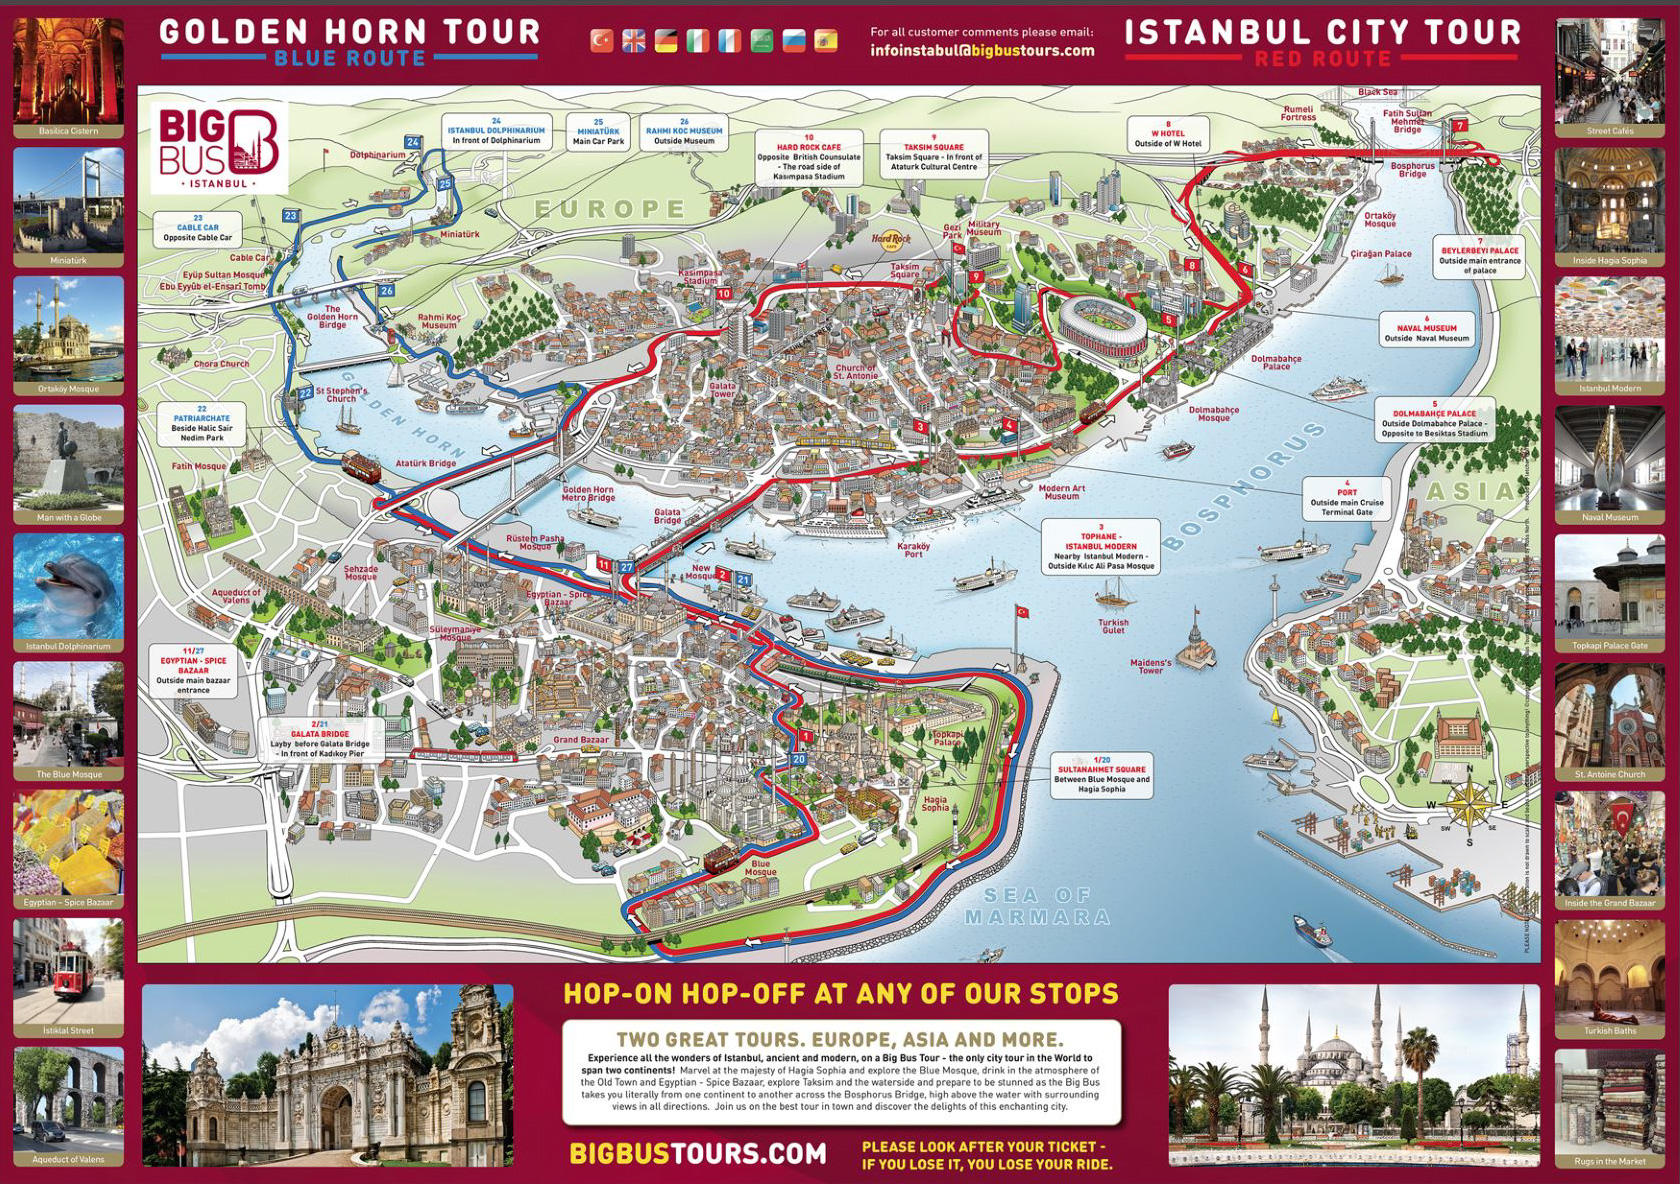 Big Bus Istanbul HopOn HopOff Tour Tours and Passes TravelToe